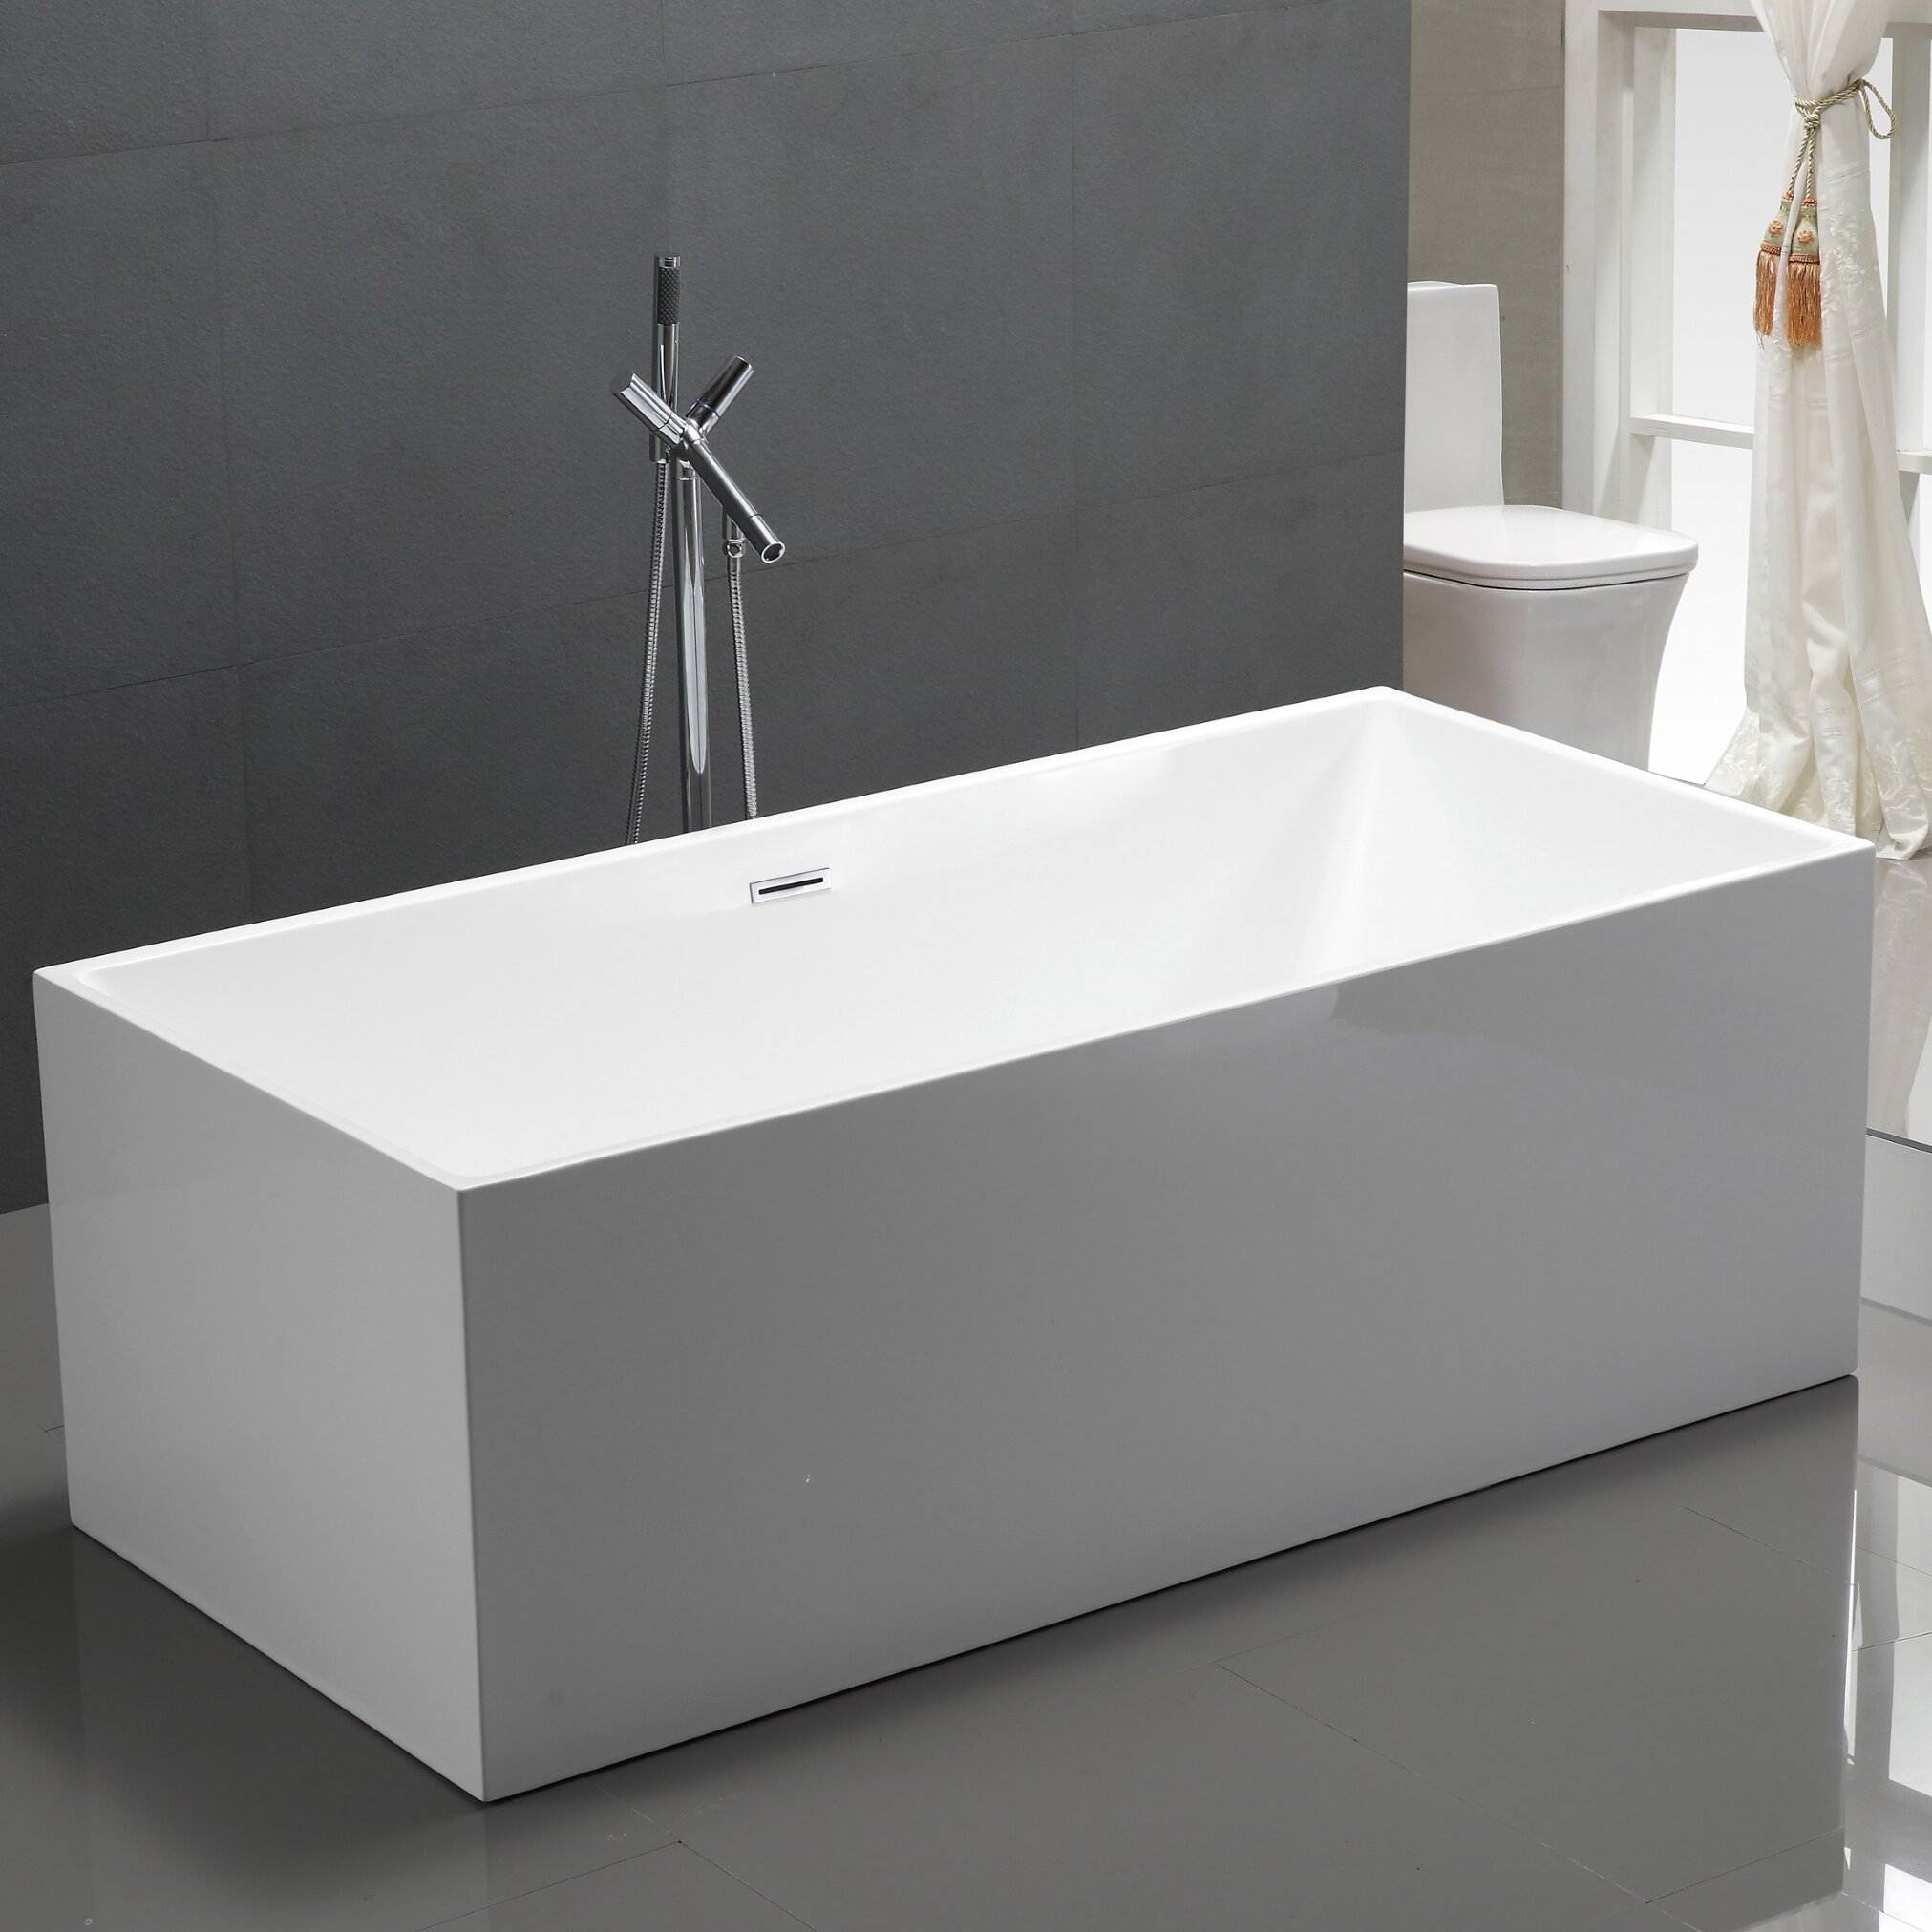 Awesome 3 Foot Bathtub Ideas Bathroom And Shower Purosioncom